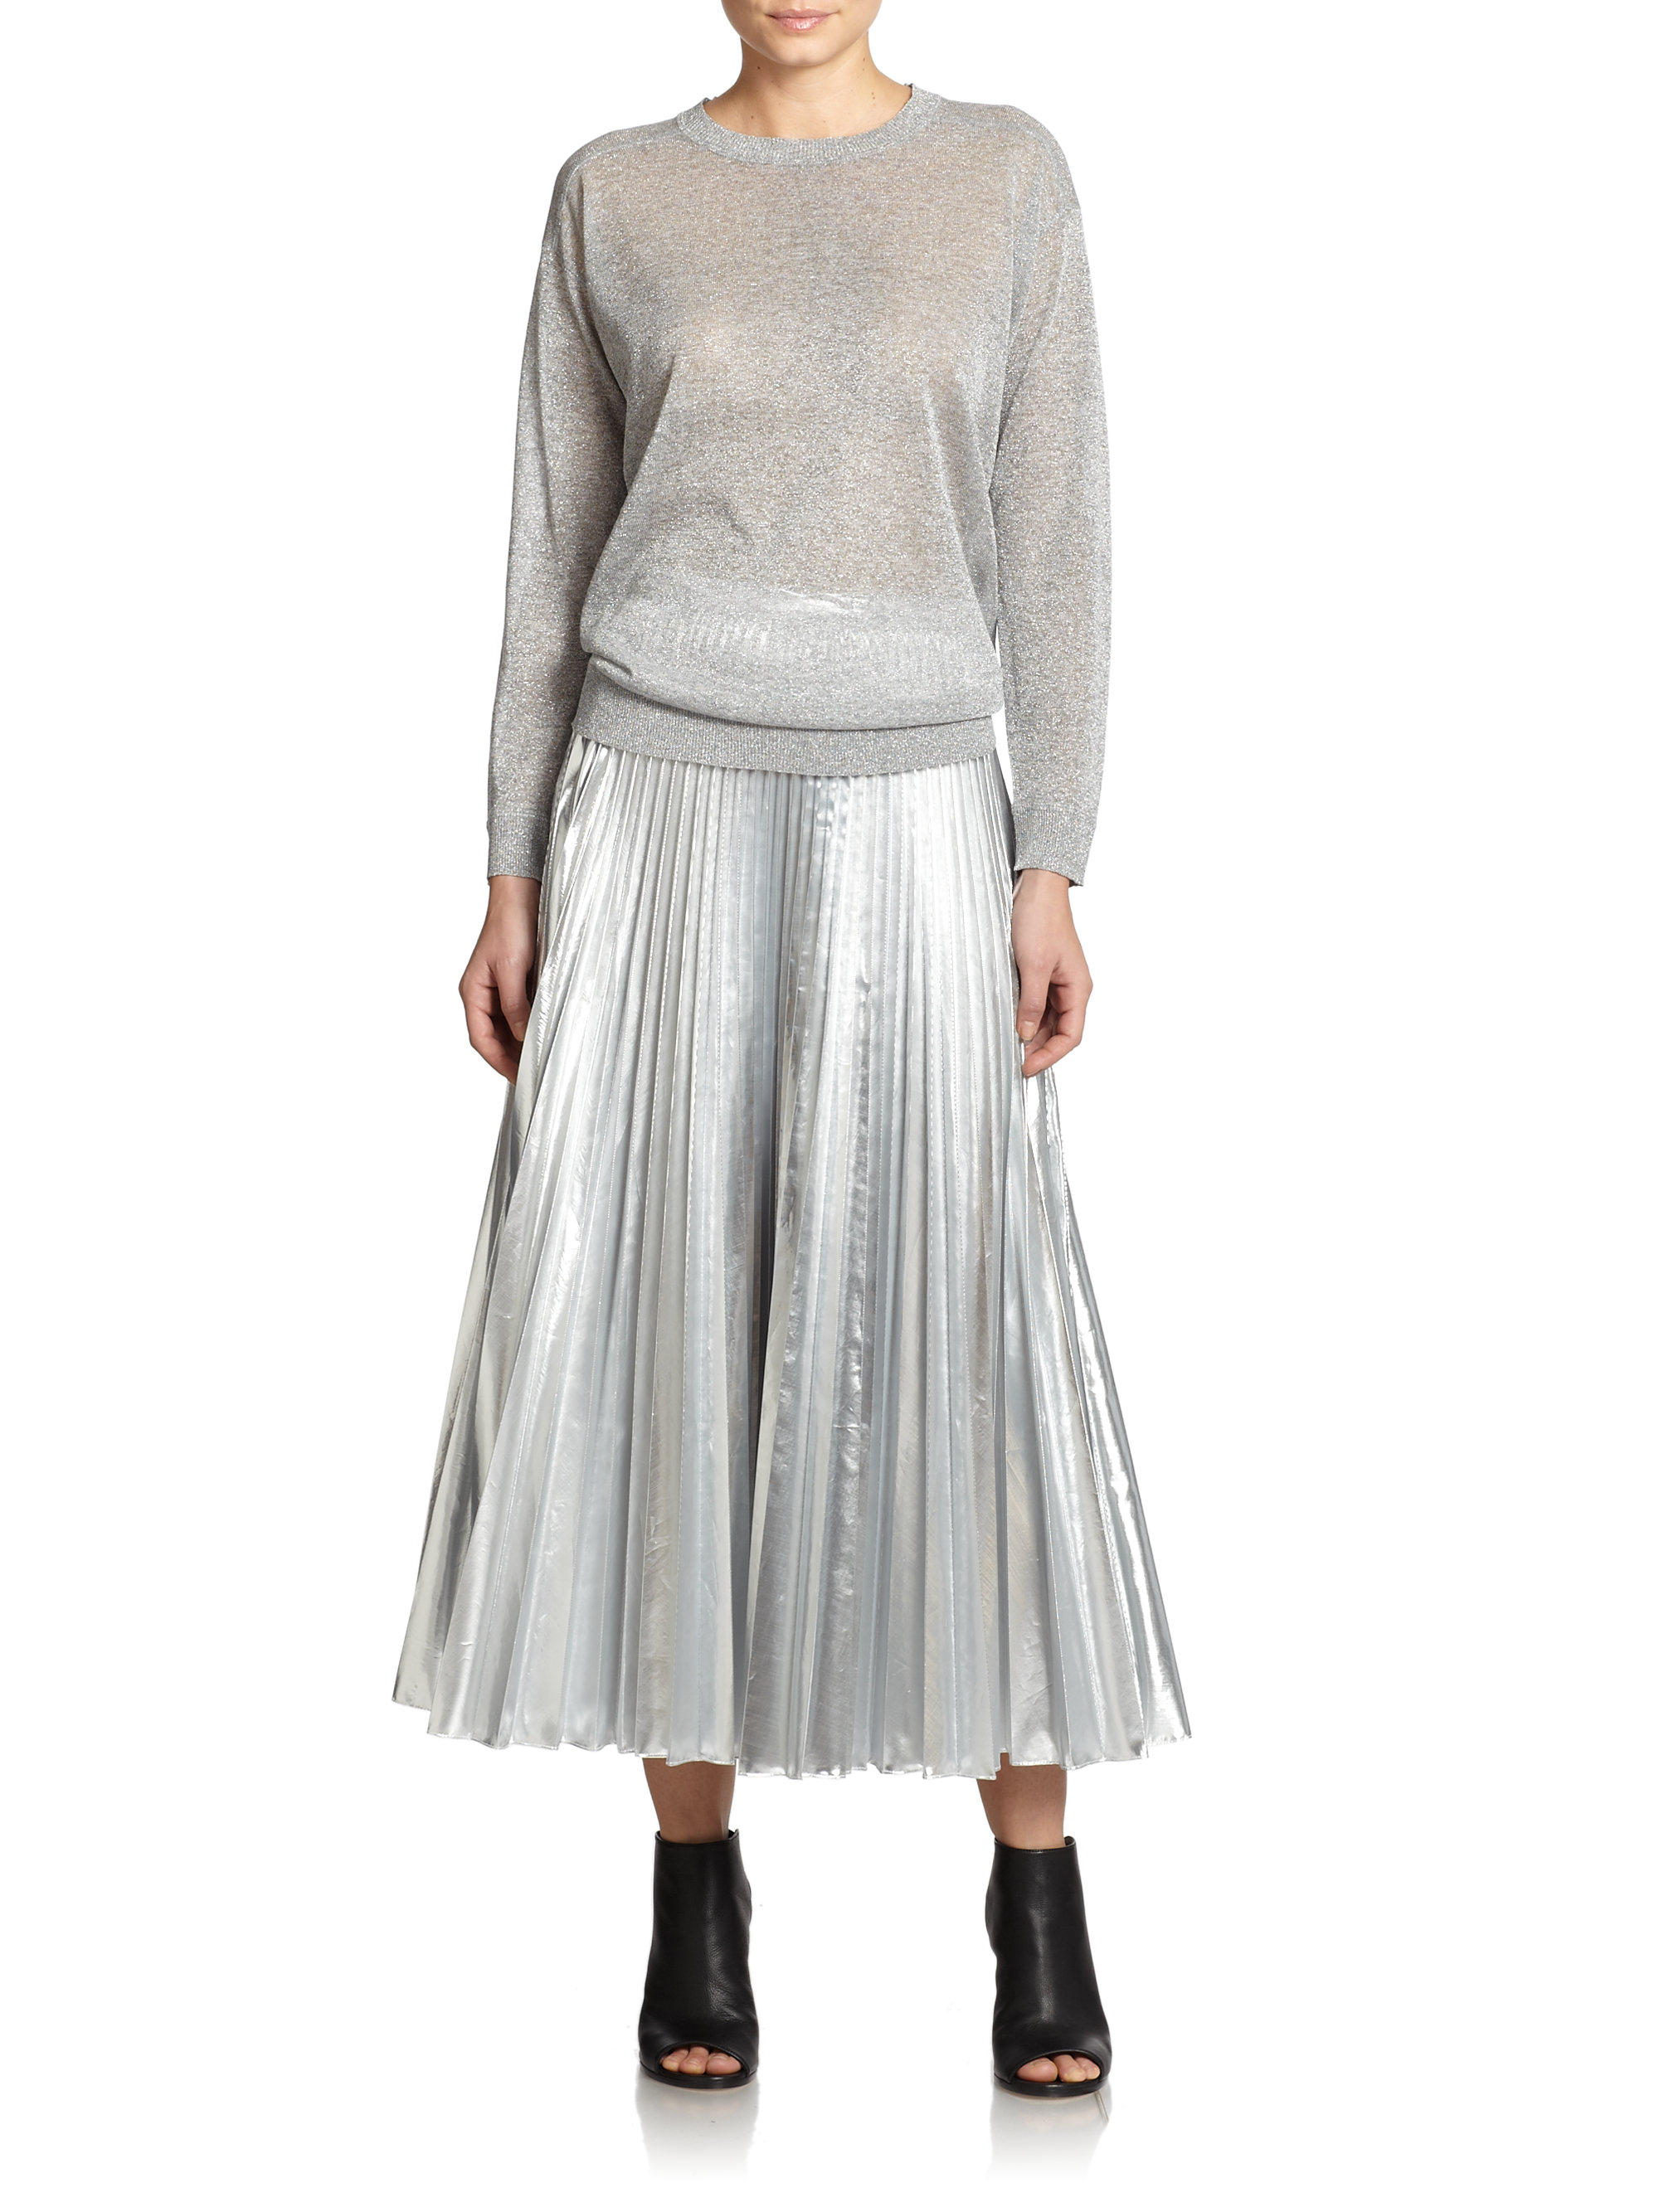 Dkny Metallic Pleated Maxi Skirt in Metallic | Lyst